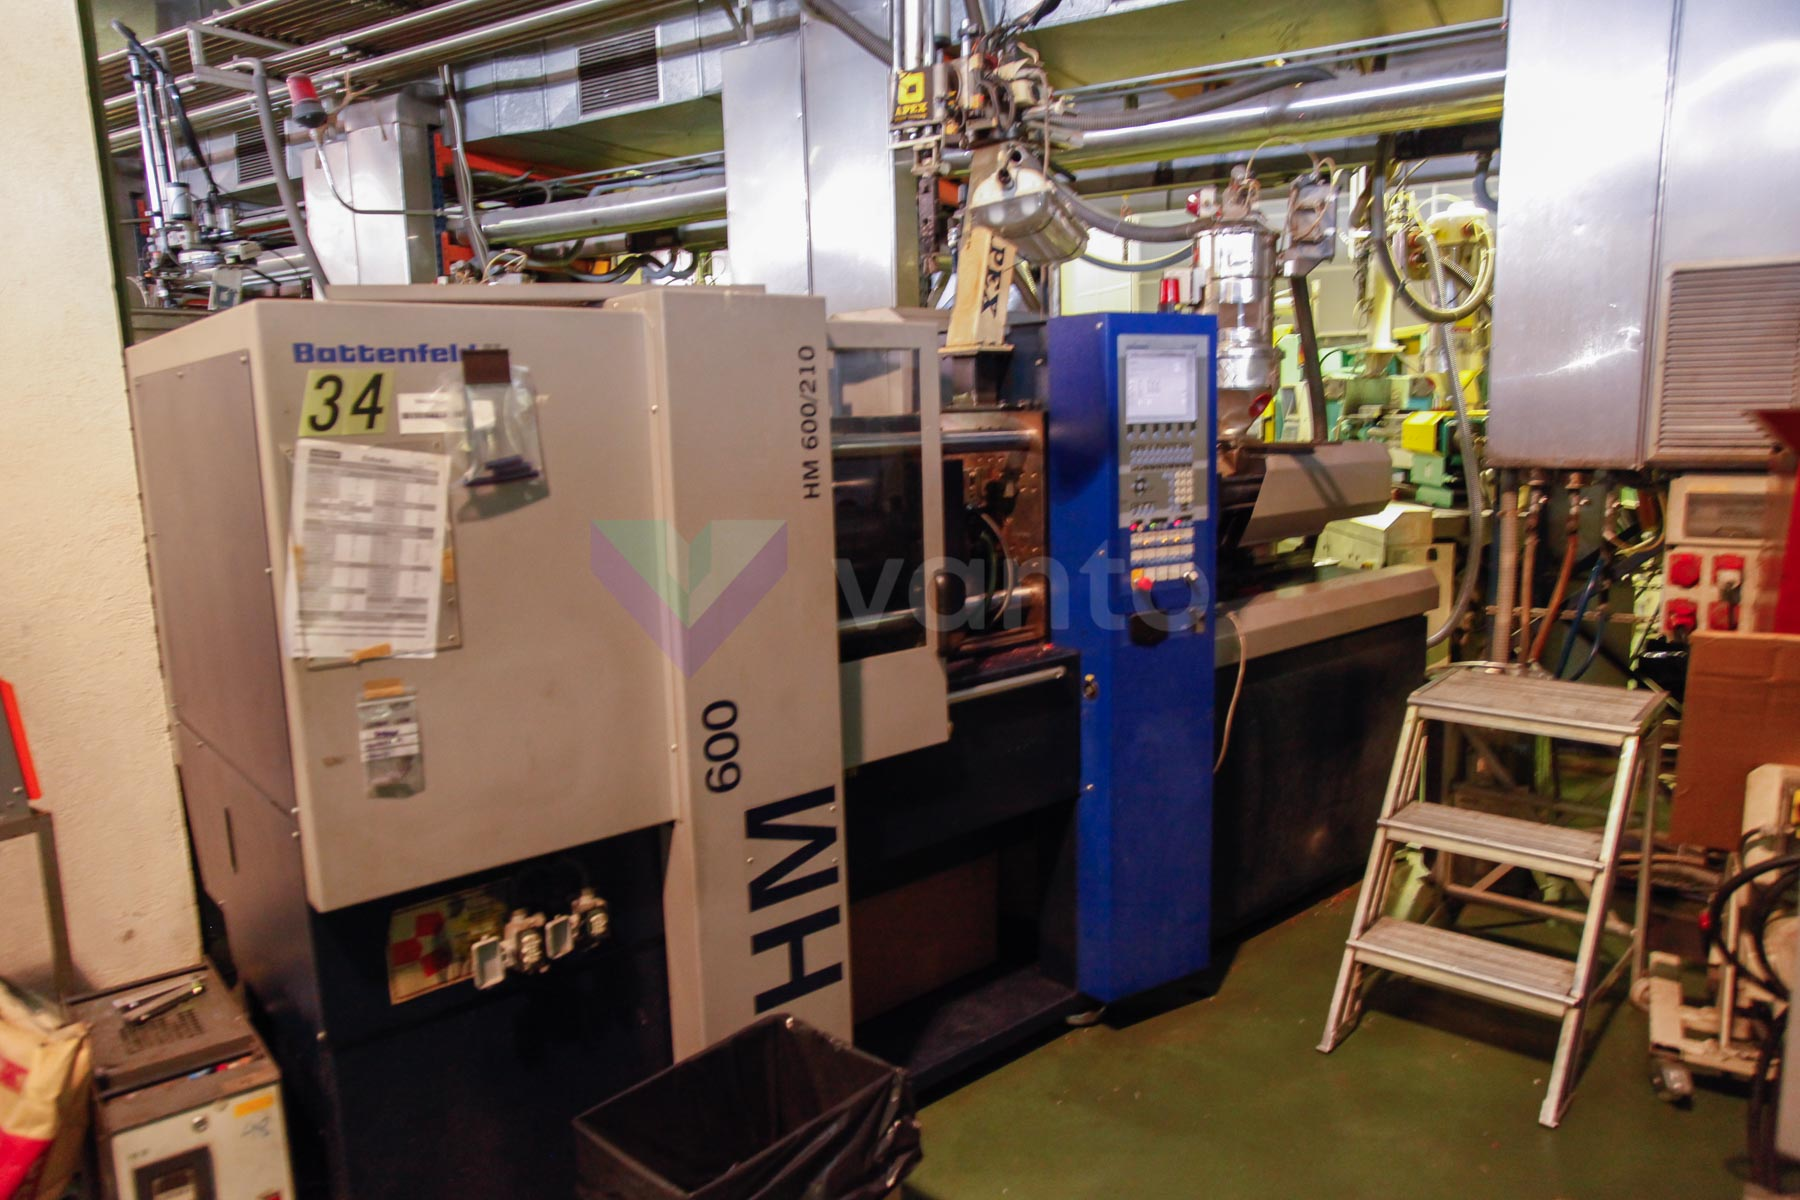 BATTENFELD BA HM 600 / 210 60t injection molding machine (2004) id4535